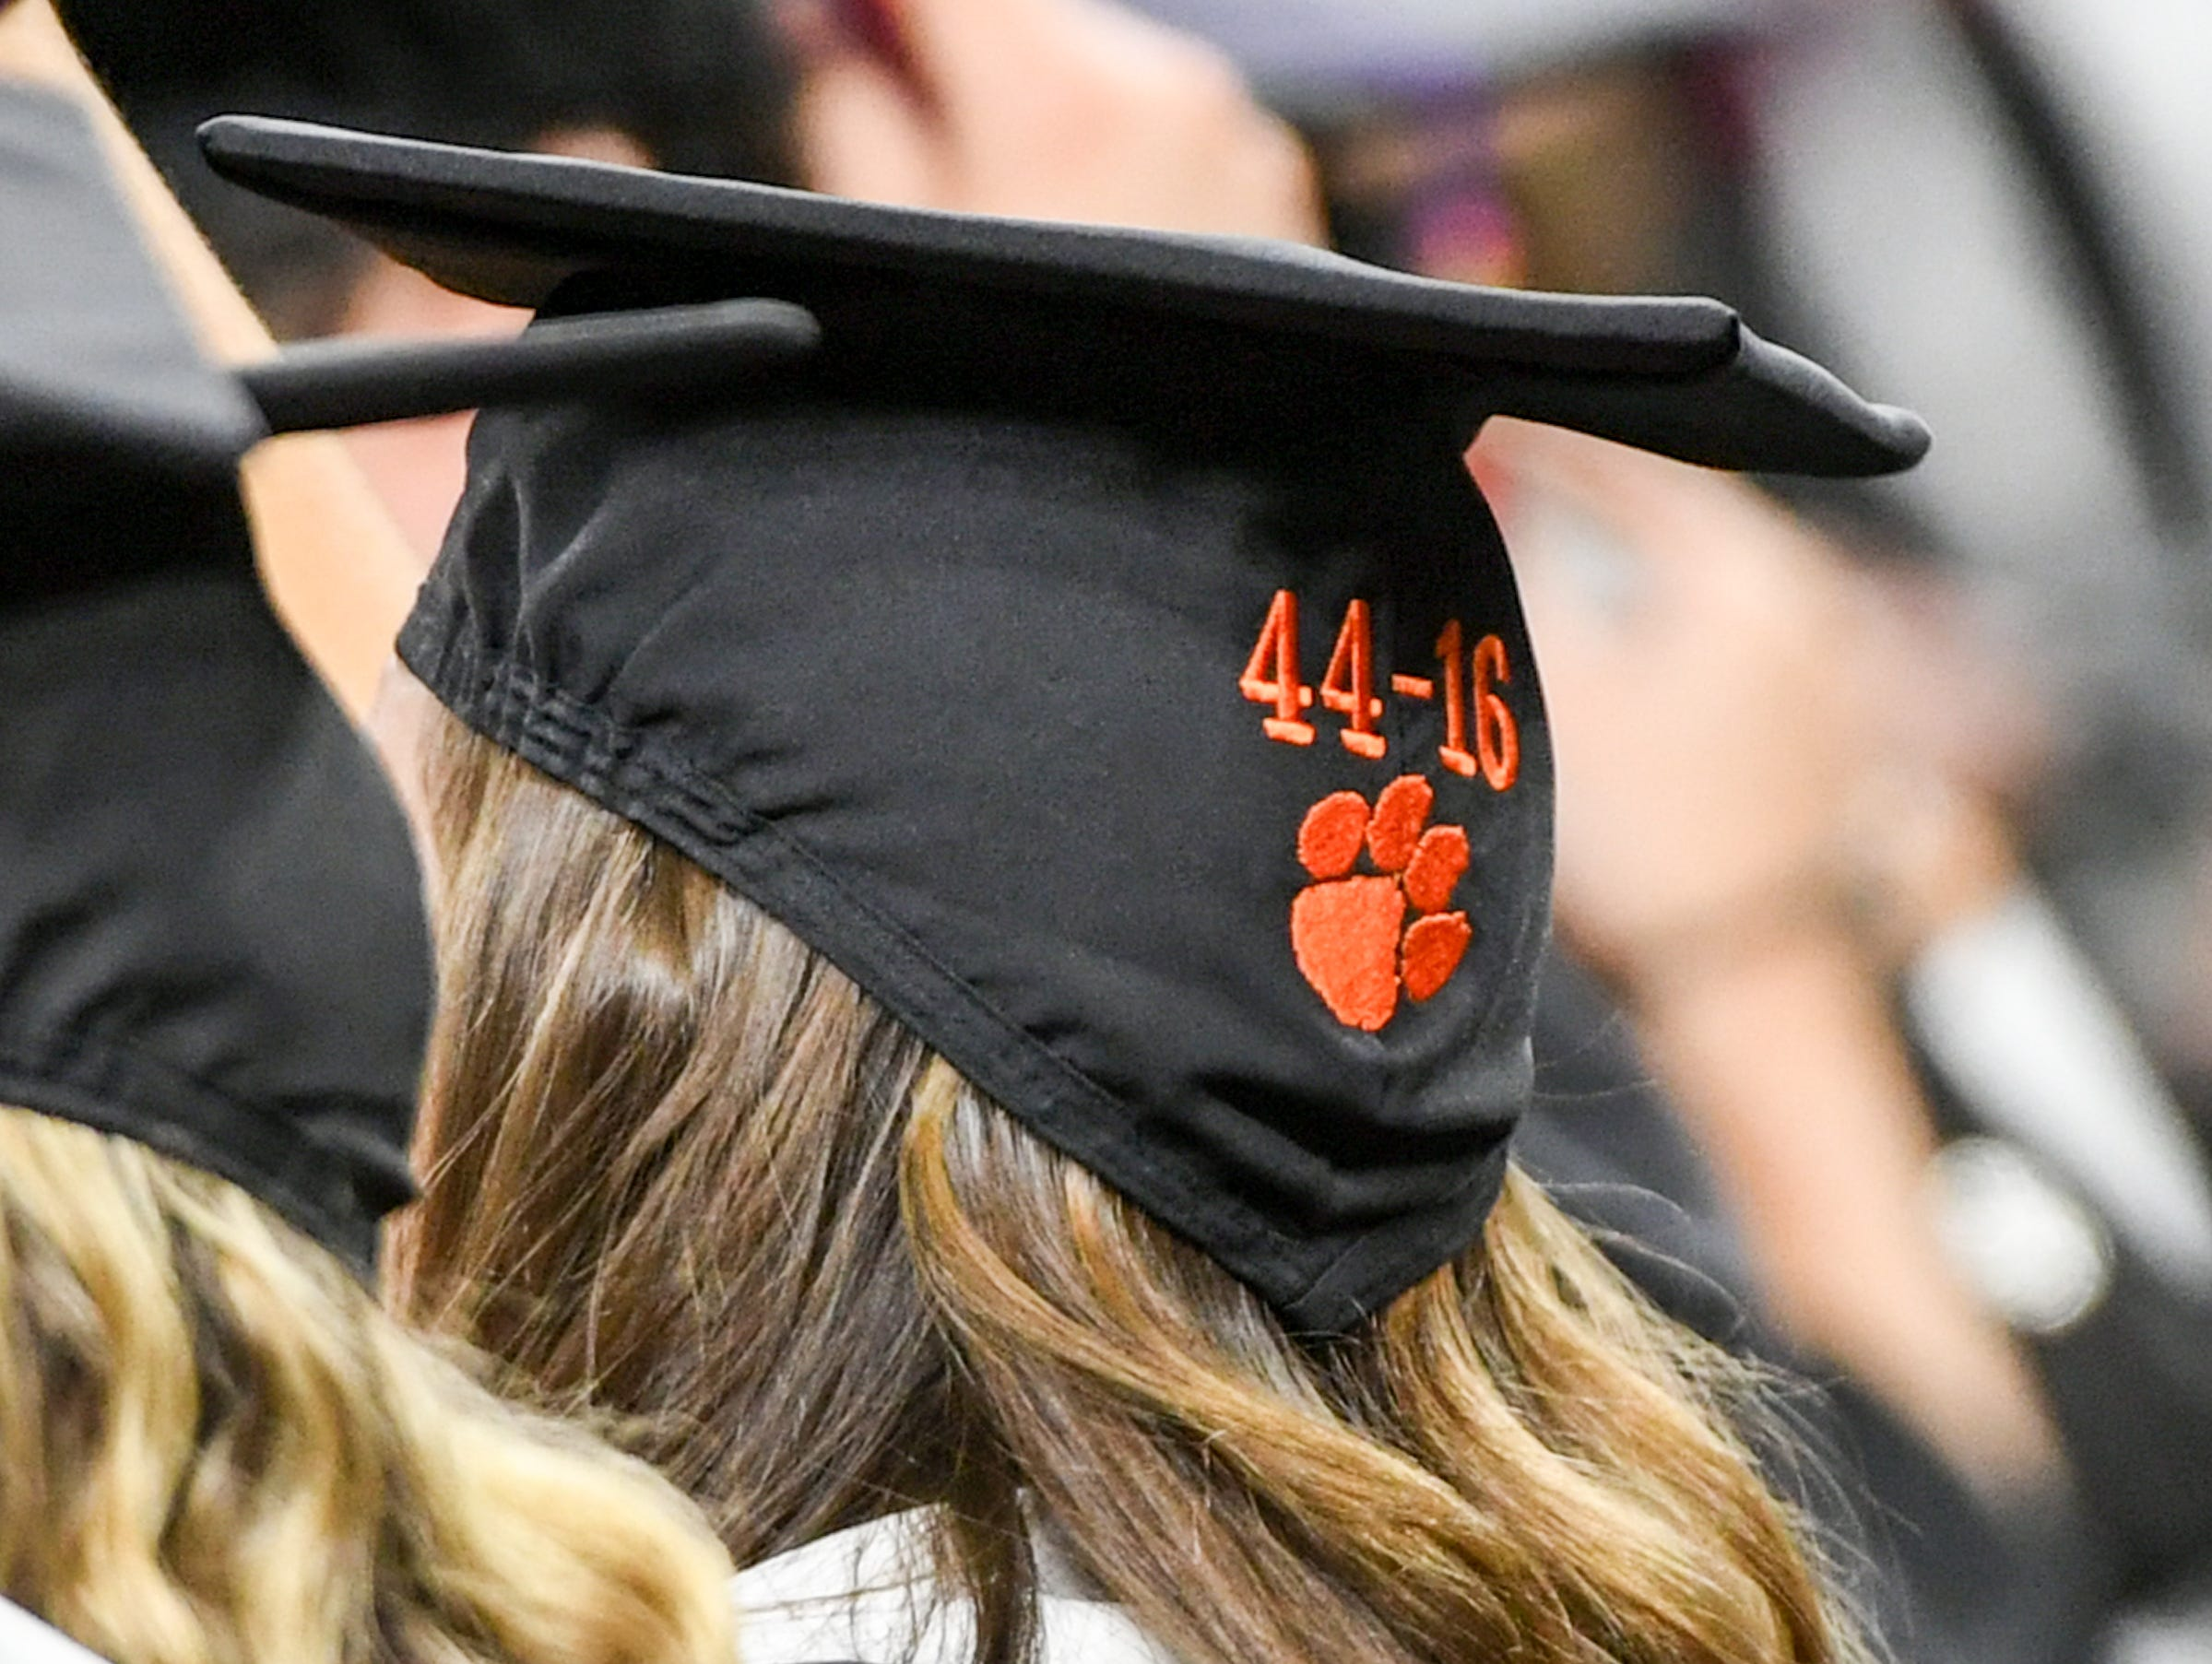 A graduate wears a cap with 44-16 embroidered in it during Clemson University commencement ceremonies in Littlejohn Coliseum in Clemson Friday, May 10, 2019. Clemson football beat Alabama in January 44-16 for their second football national championship in three years.